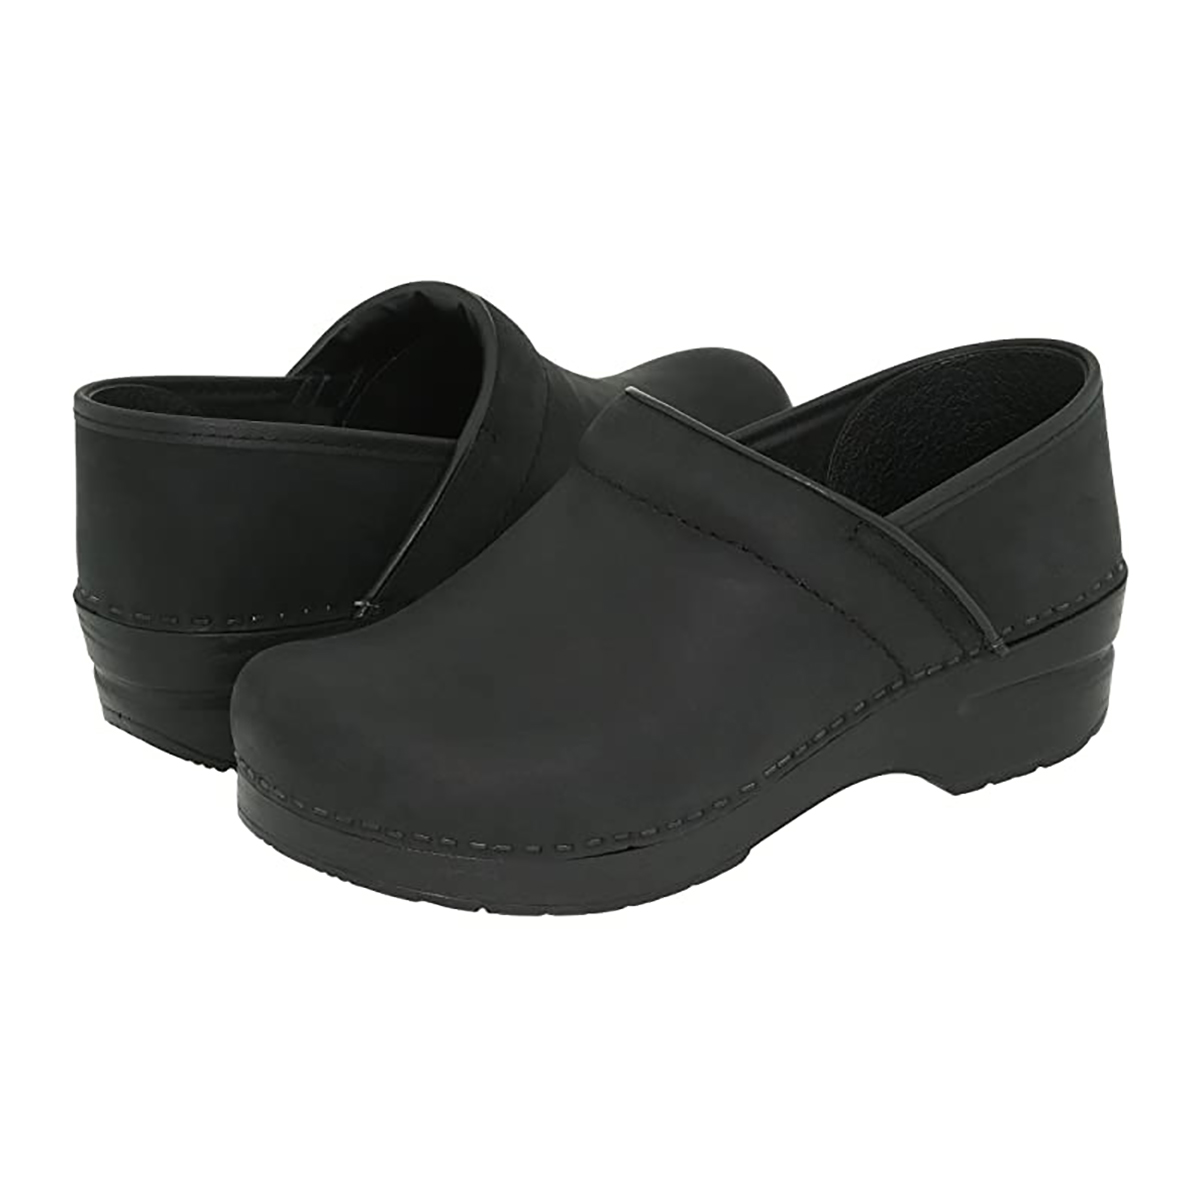 dansko professional clog with heel and arch support